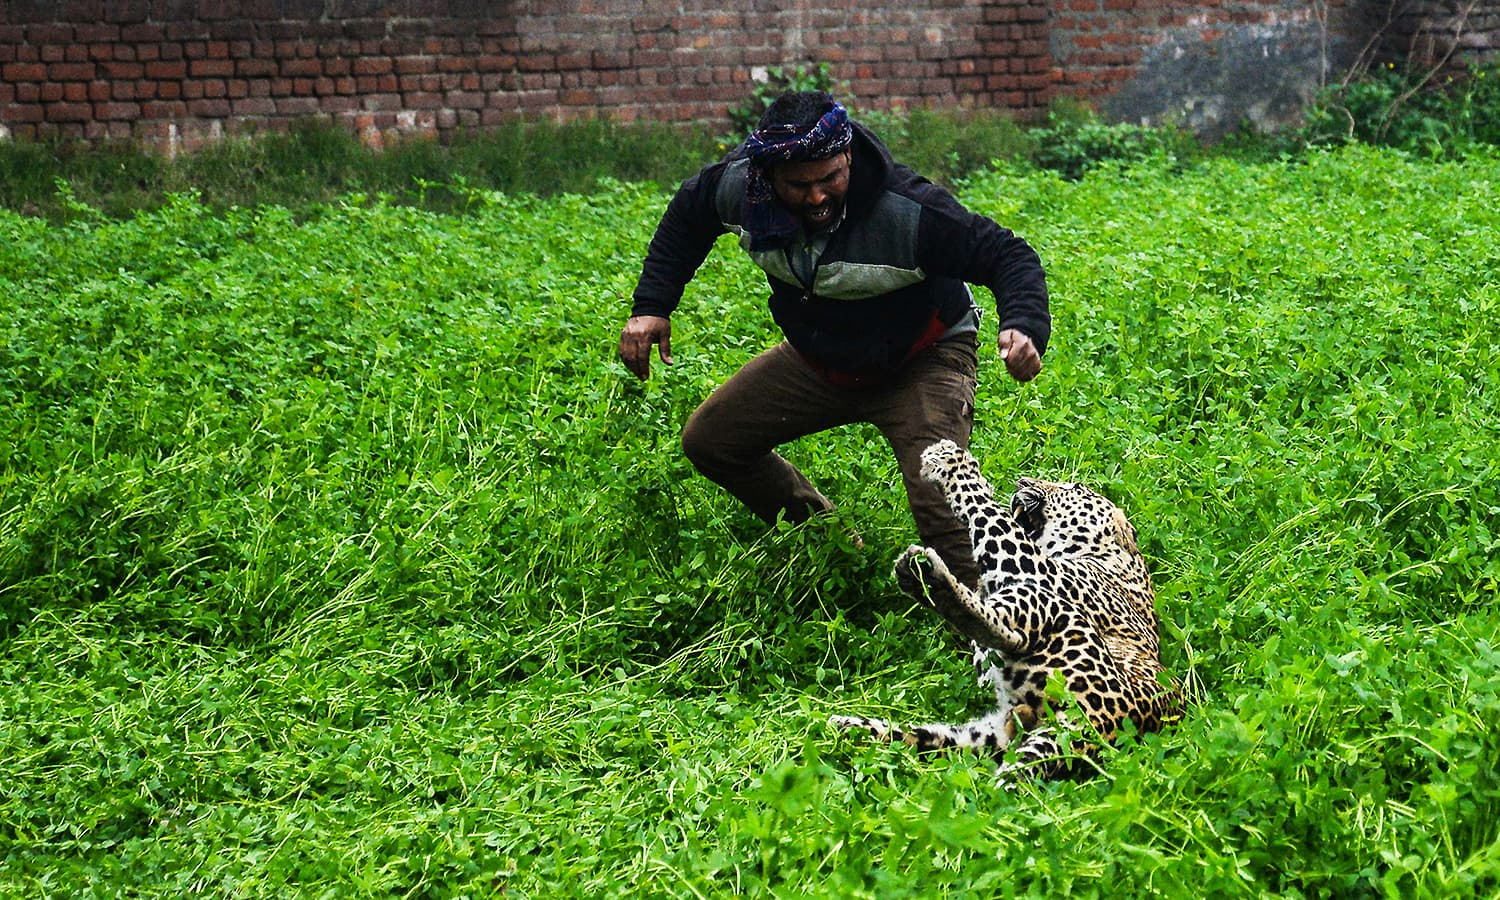 A leopard attacks an Indian man in Lamba Pind area in Jalandhar on January 31, 2019. ─ AFP